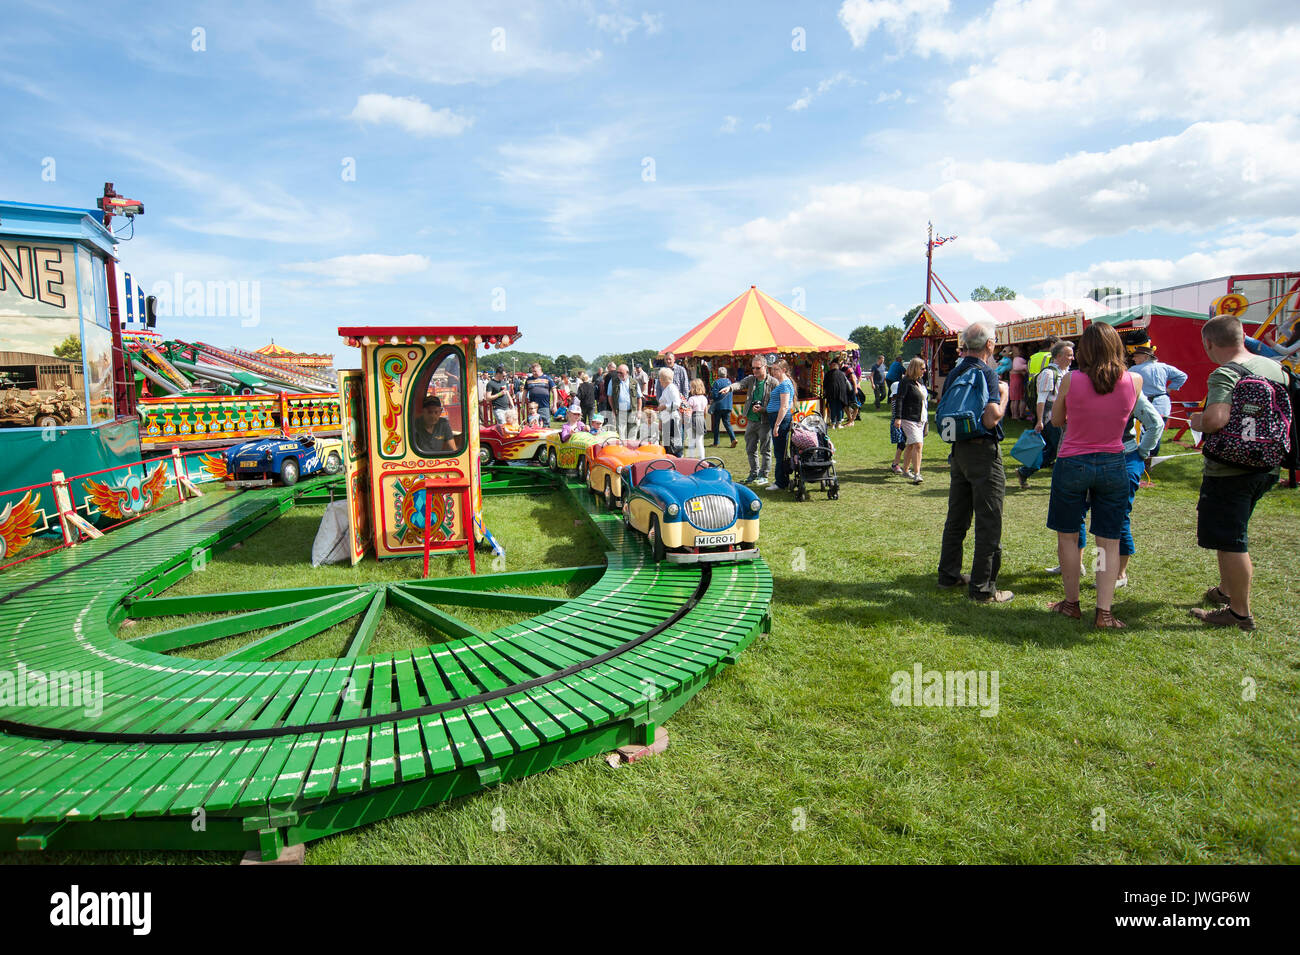 Families enjoying a day out in the sunshine at a children's funfair at Vintage steam rally, UK GB England Stock Photo